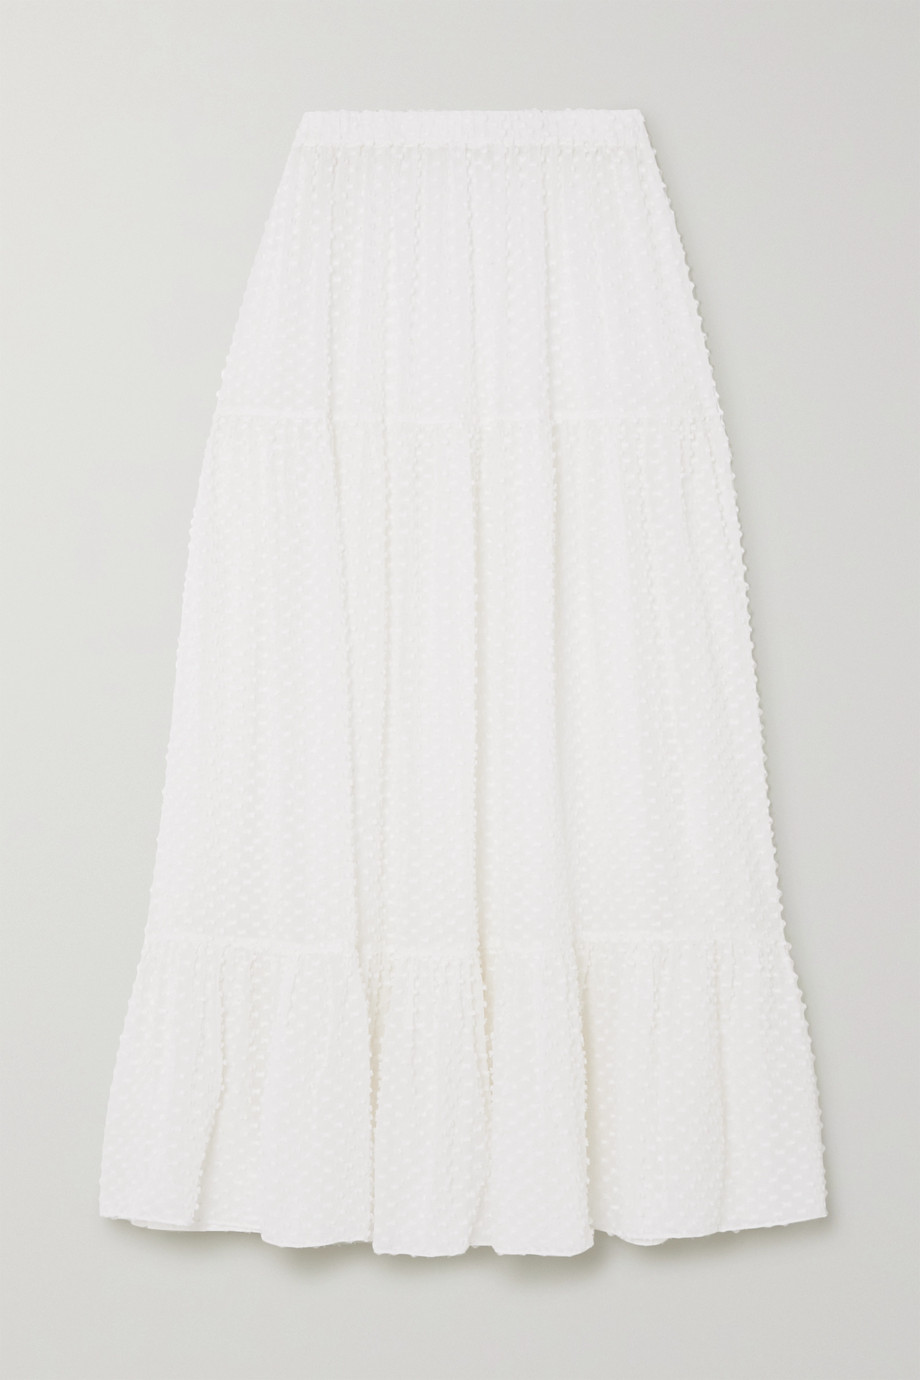 Eres Boutis tiered ruffled fil coupé silk and cotton-blend midi skirt